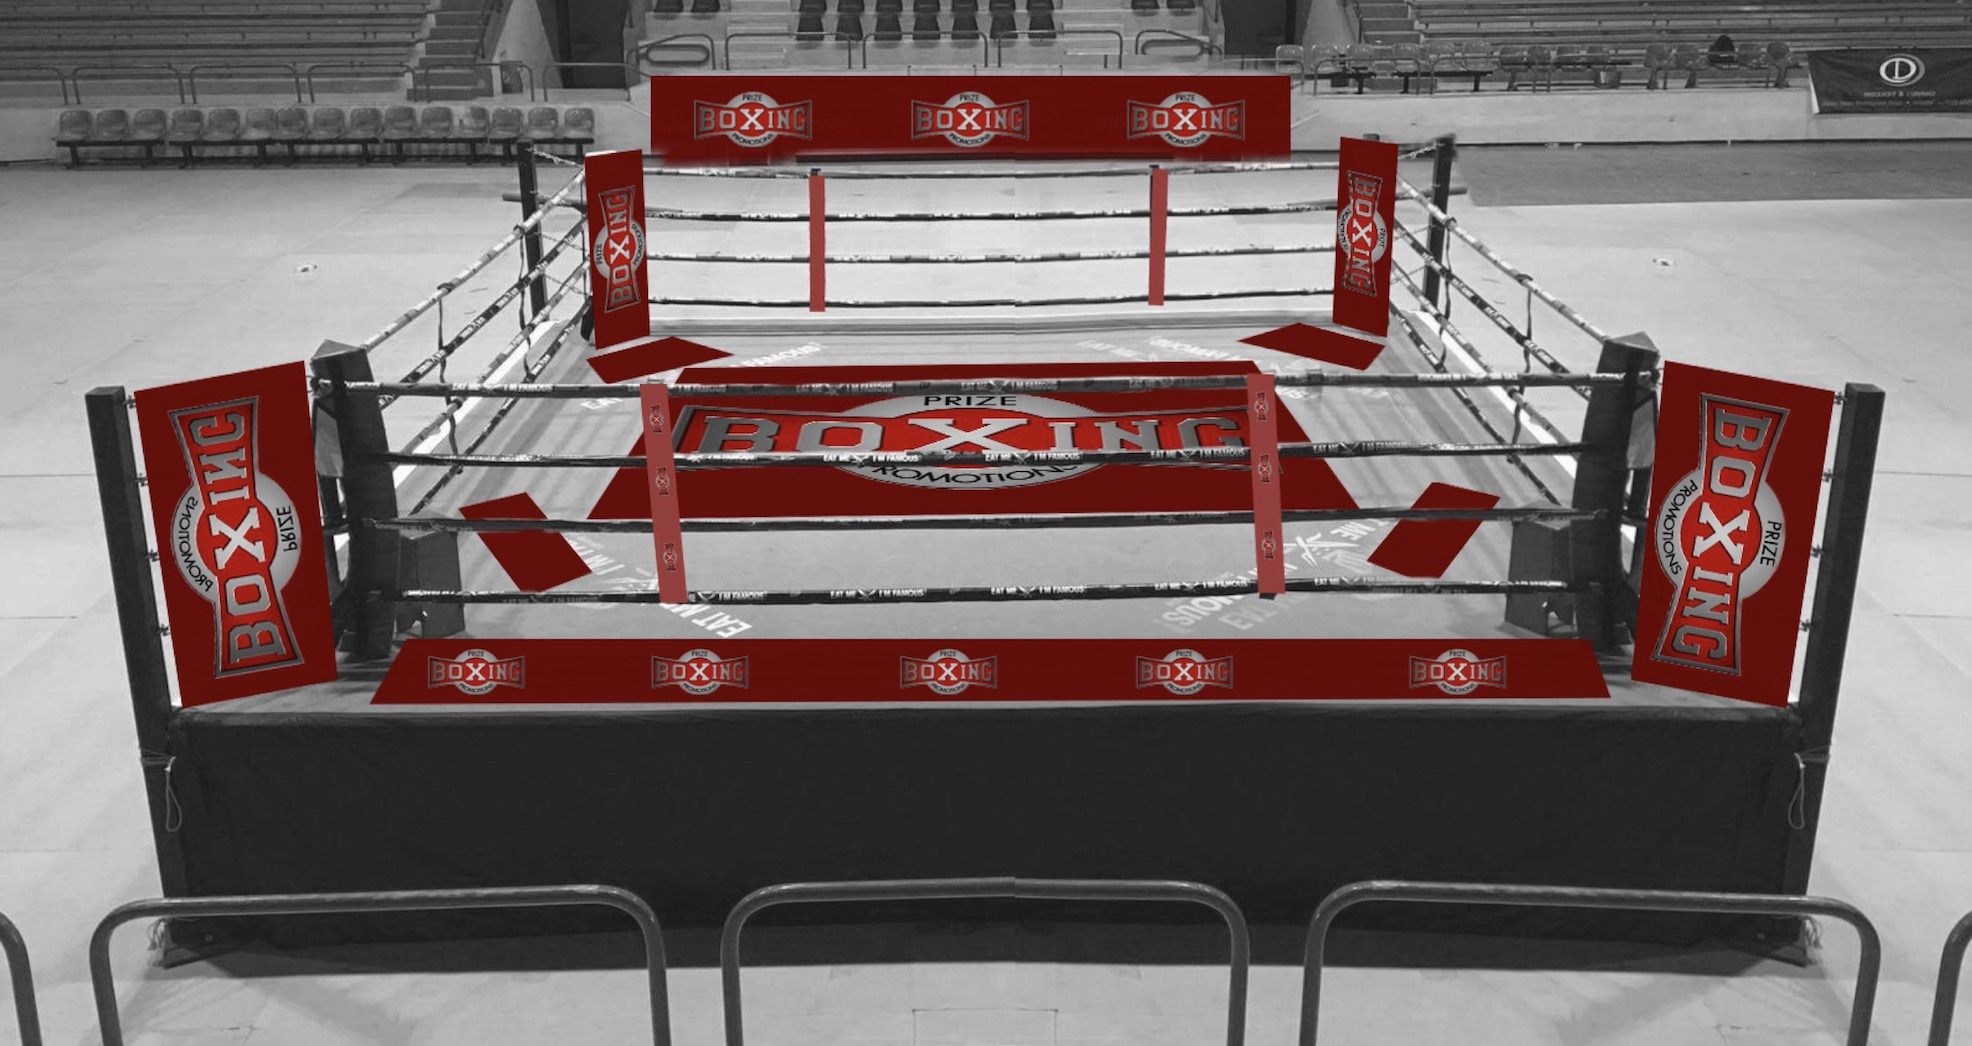 Prize Boxing Promotions Sponsorship Opportunities